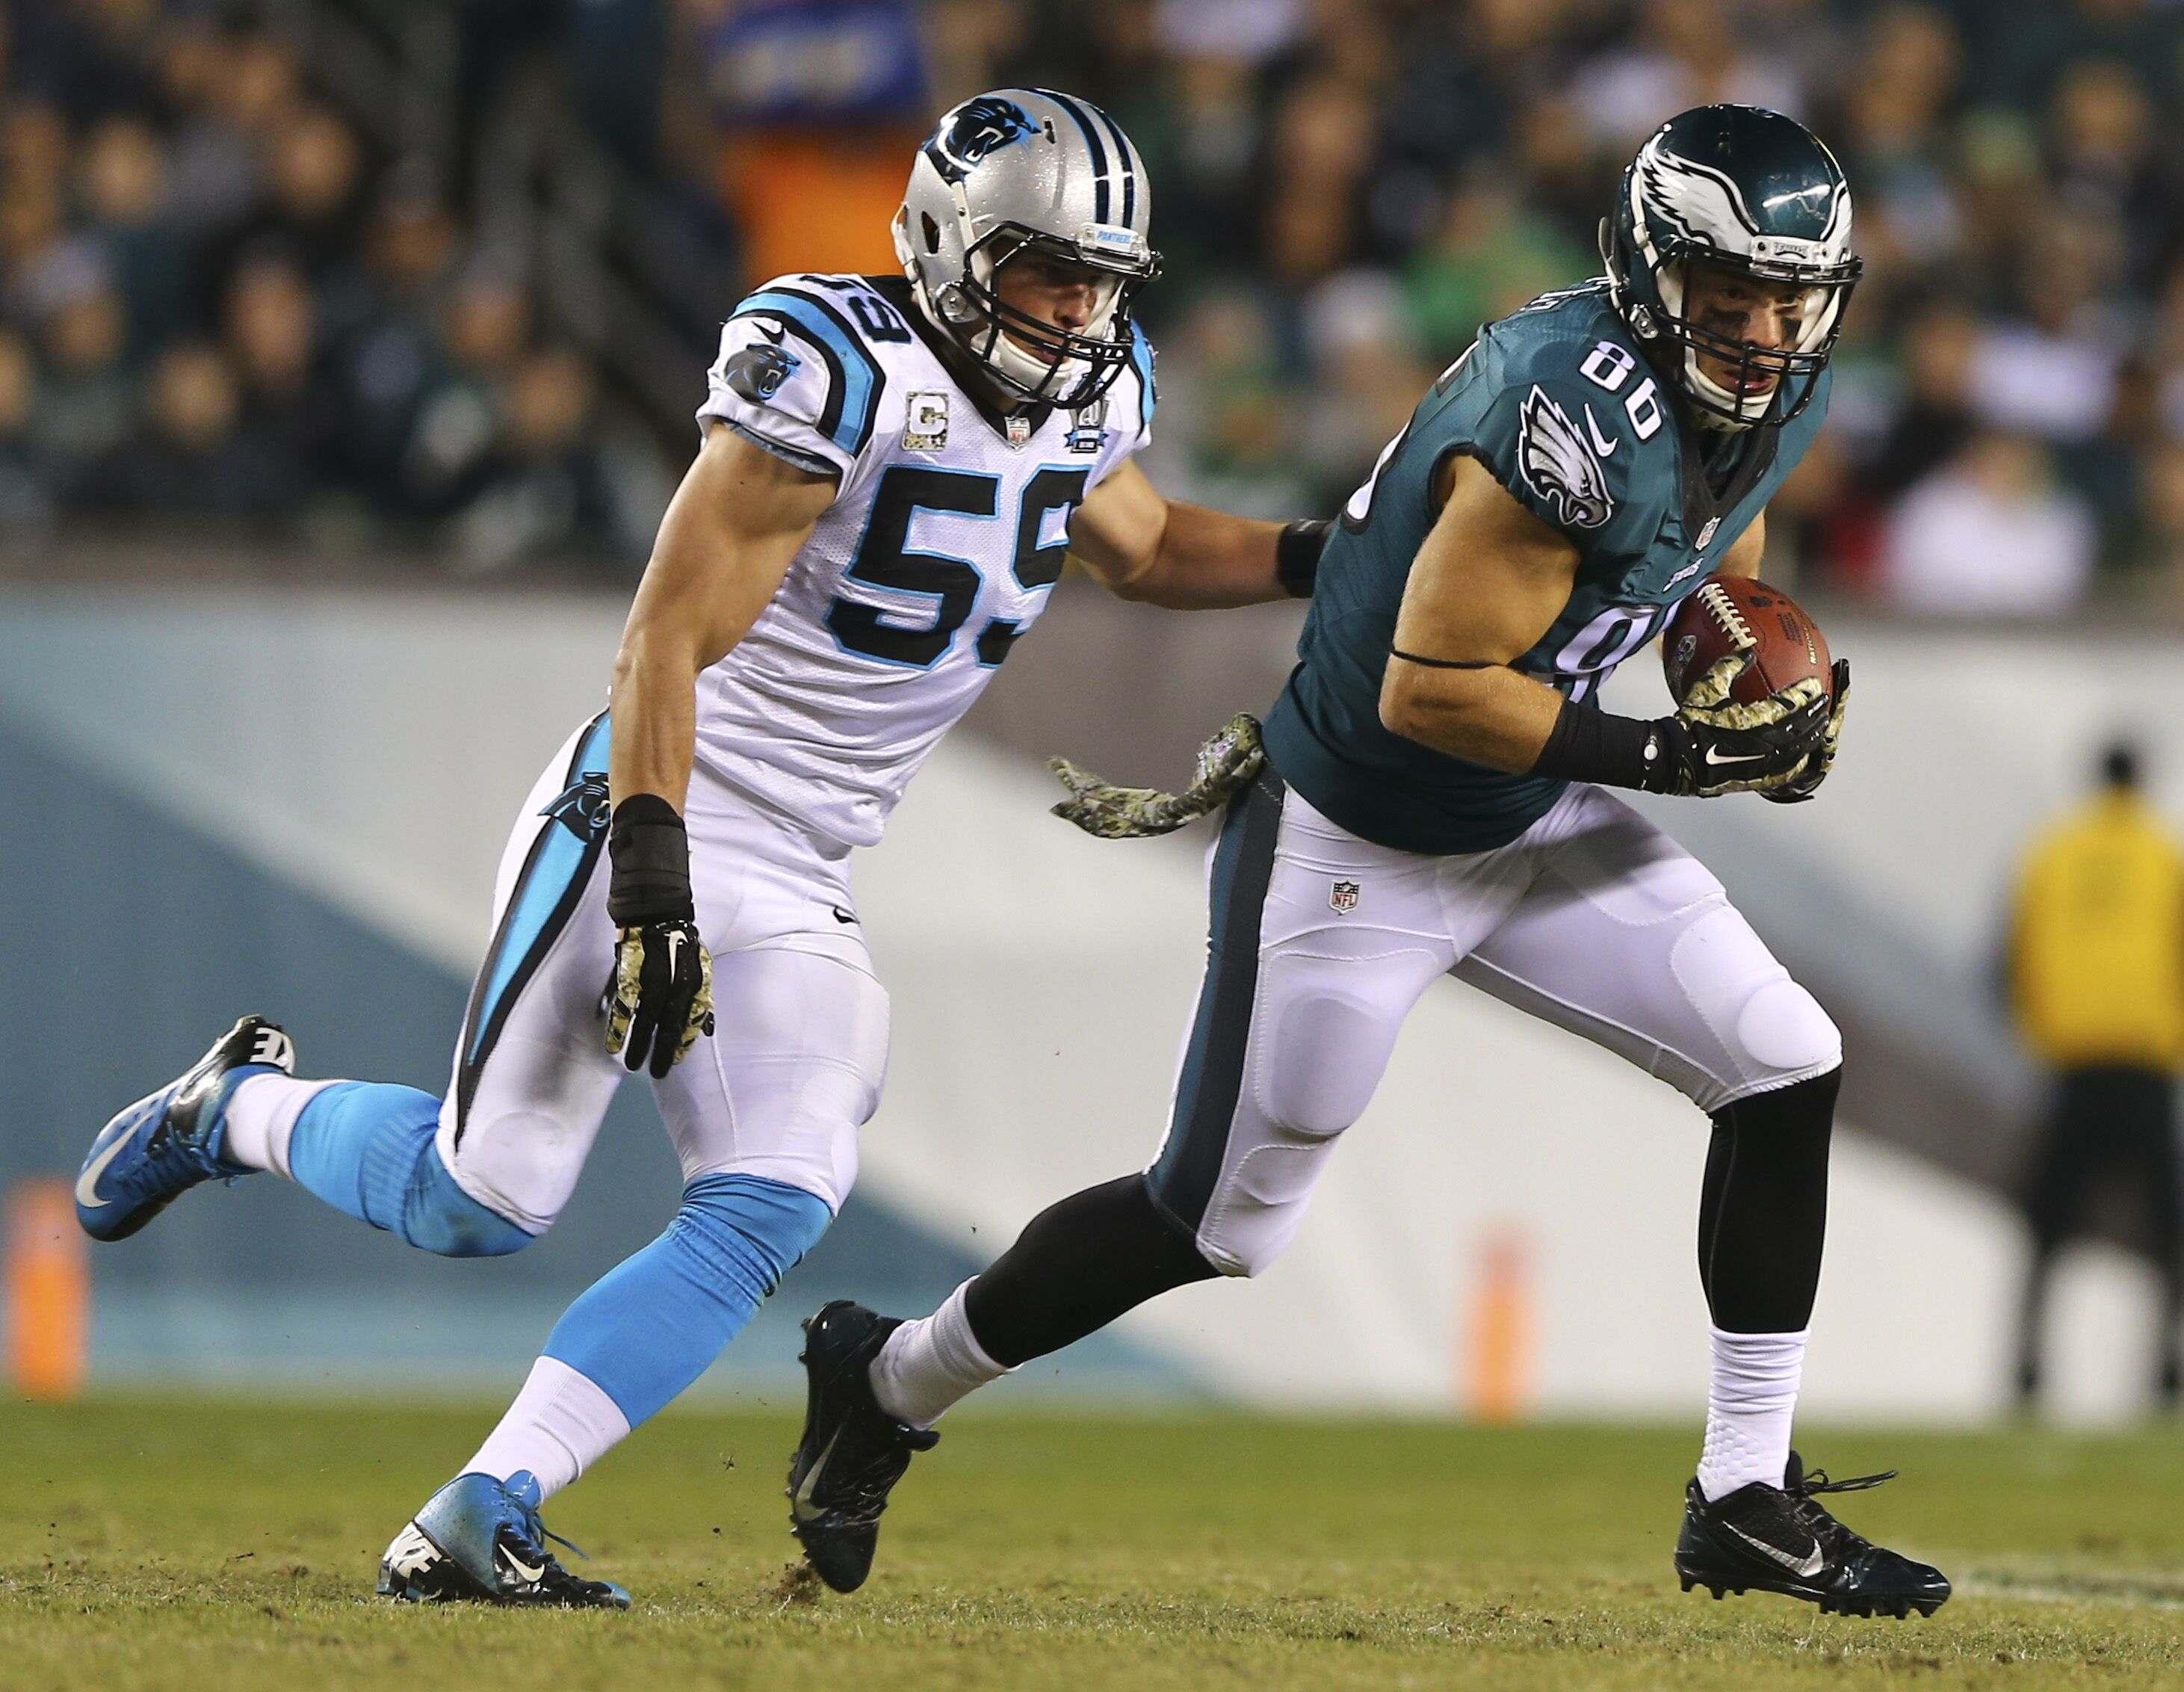 Carolina Panthers stop Philadelphia Eagles tight end, other keys to victory